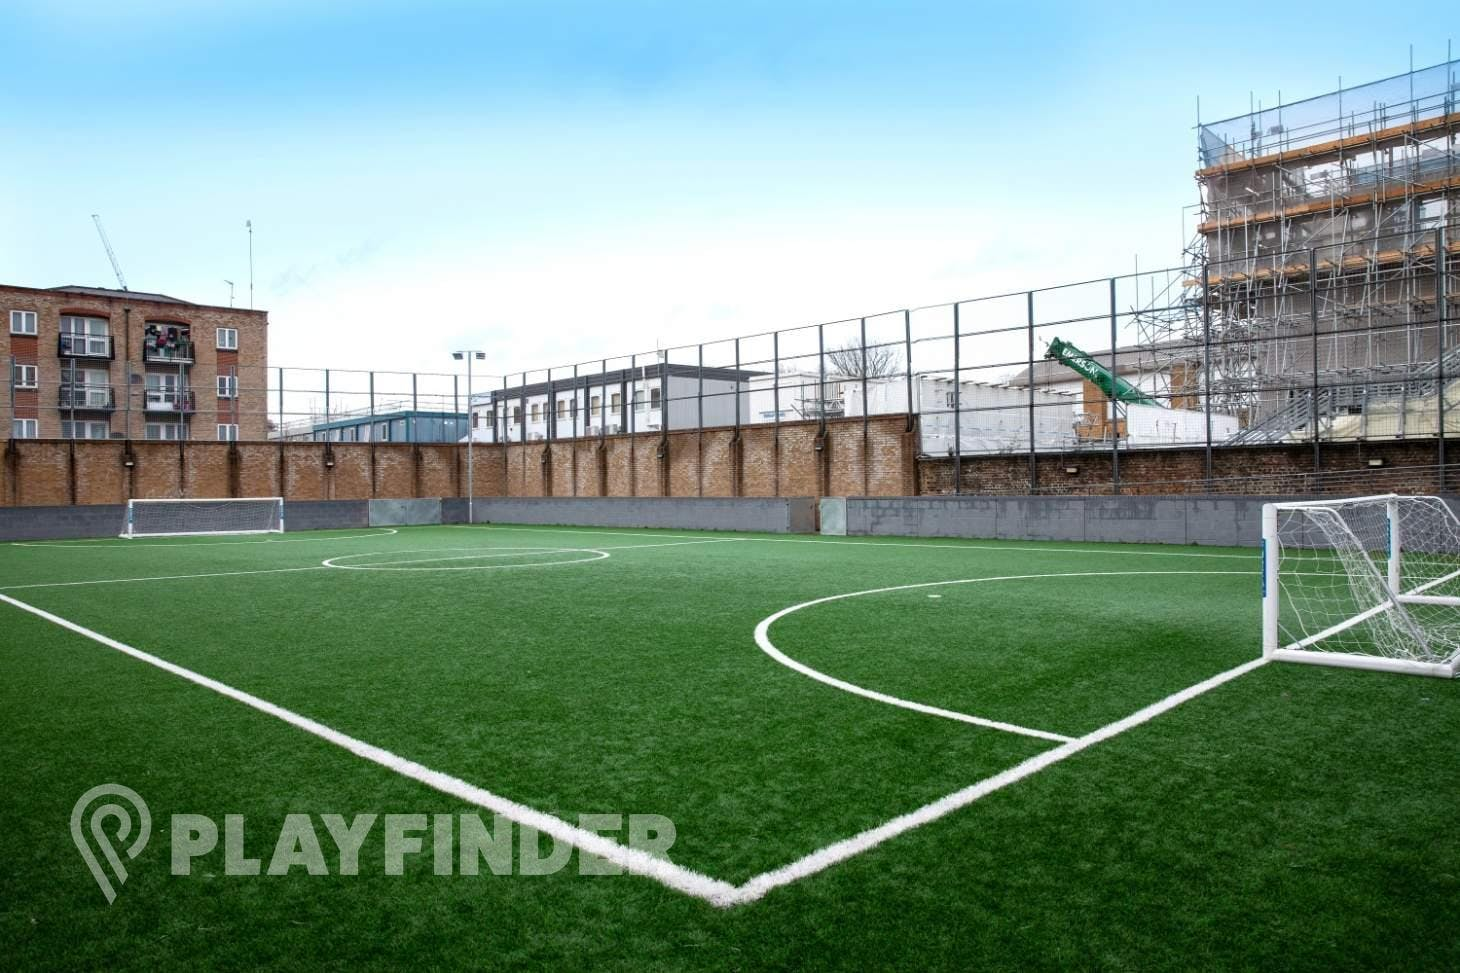 Whitechapel Sports Centre 7 a side | 3G Astroturf football pitch